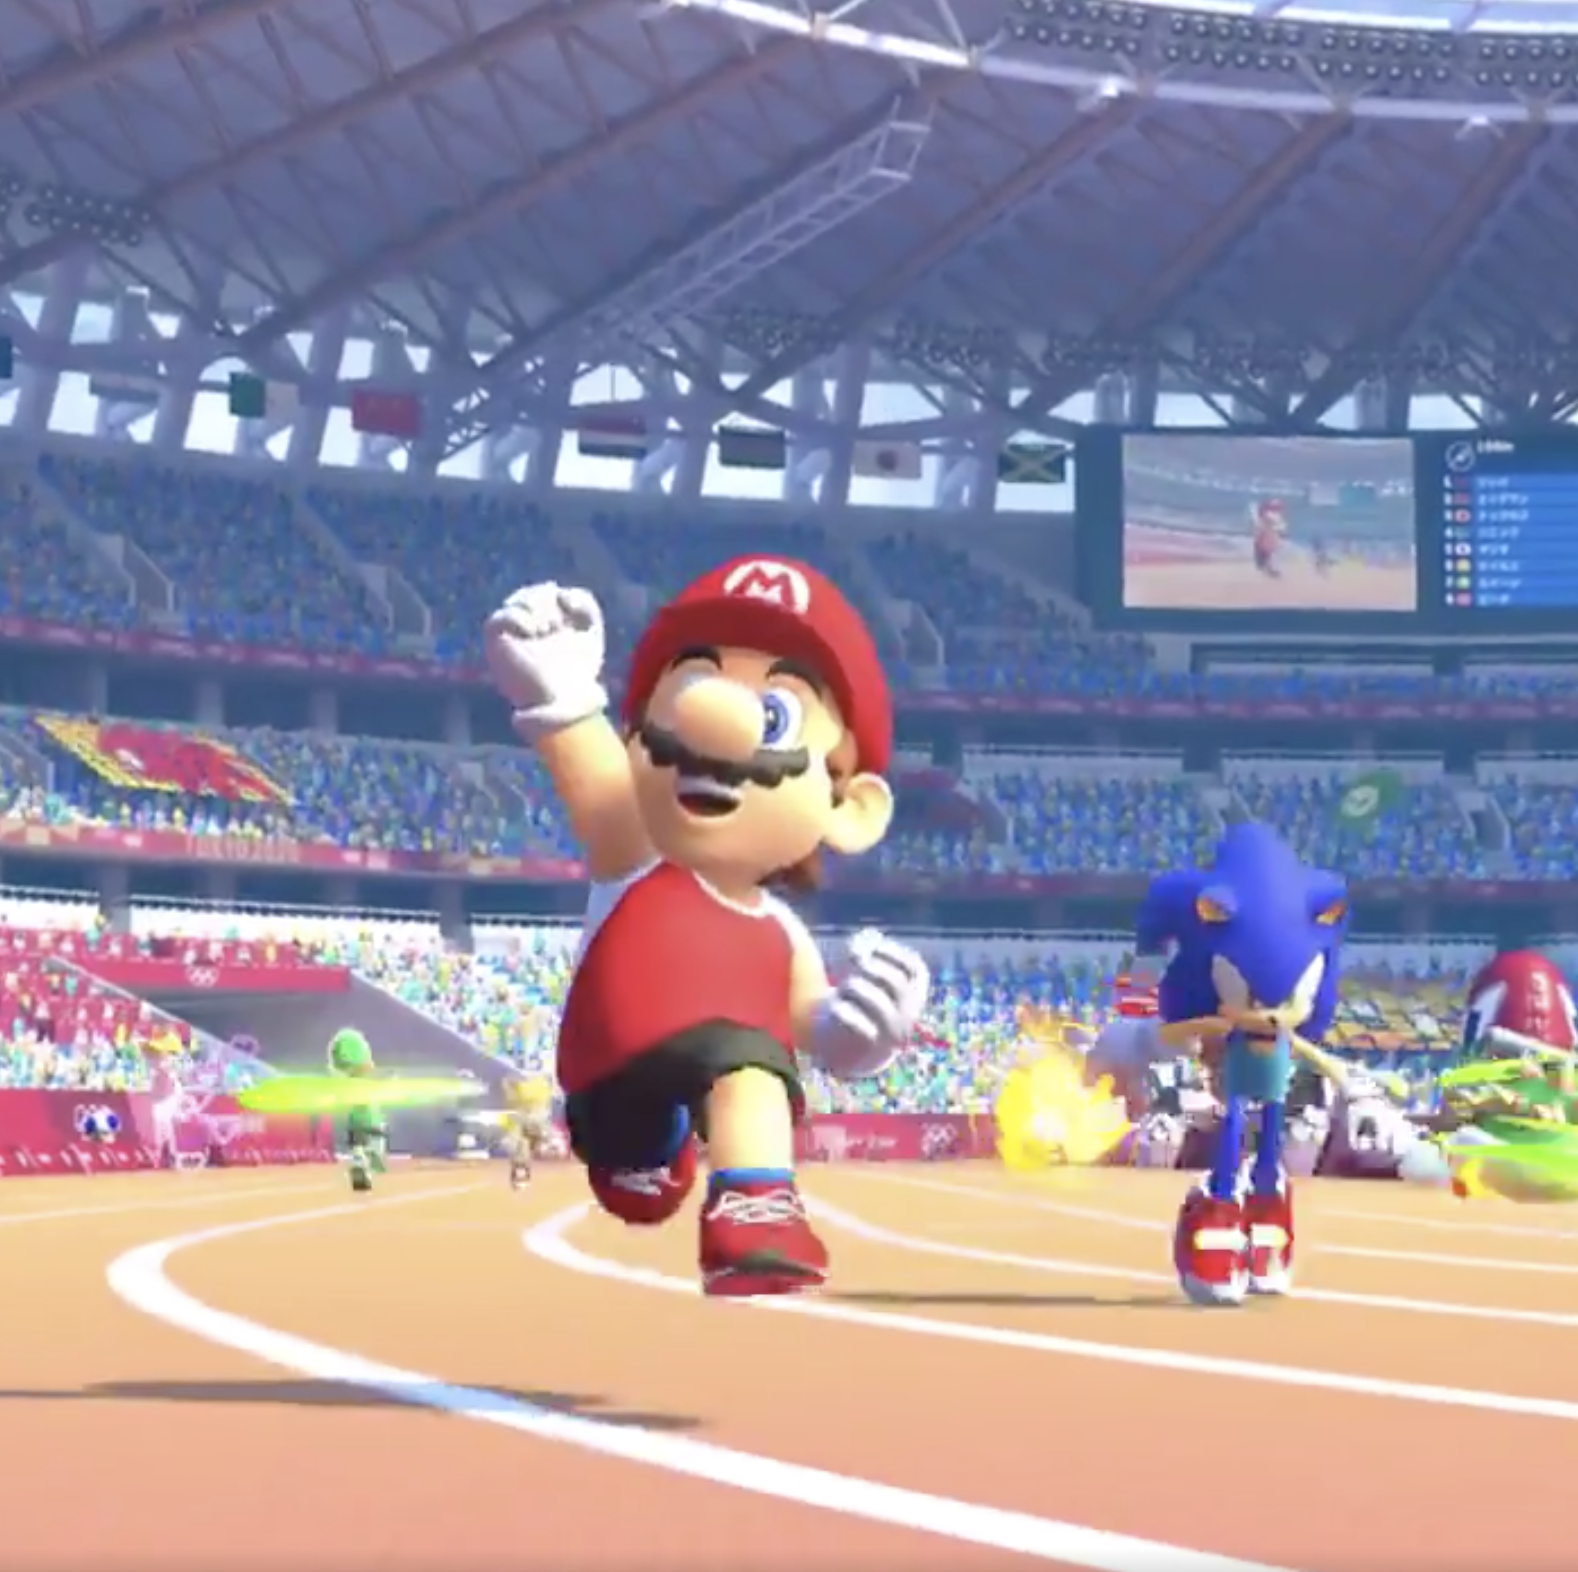 Mario and Sonic are going head-to-head again in new game for the Tokyo 2020 Olympics